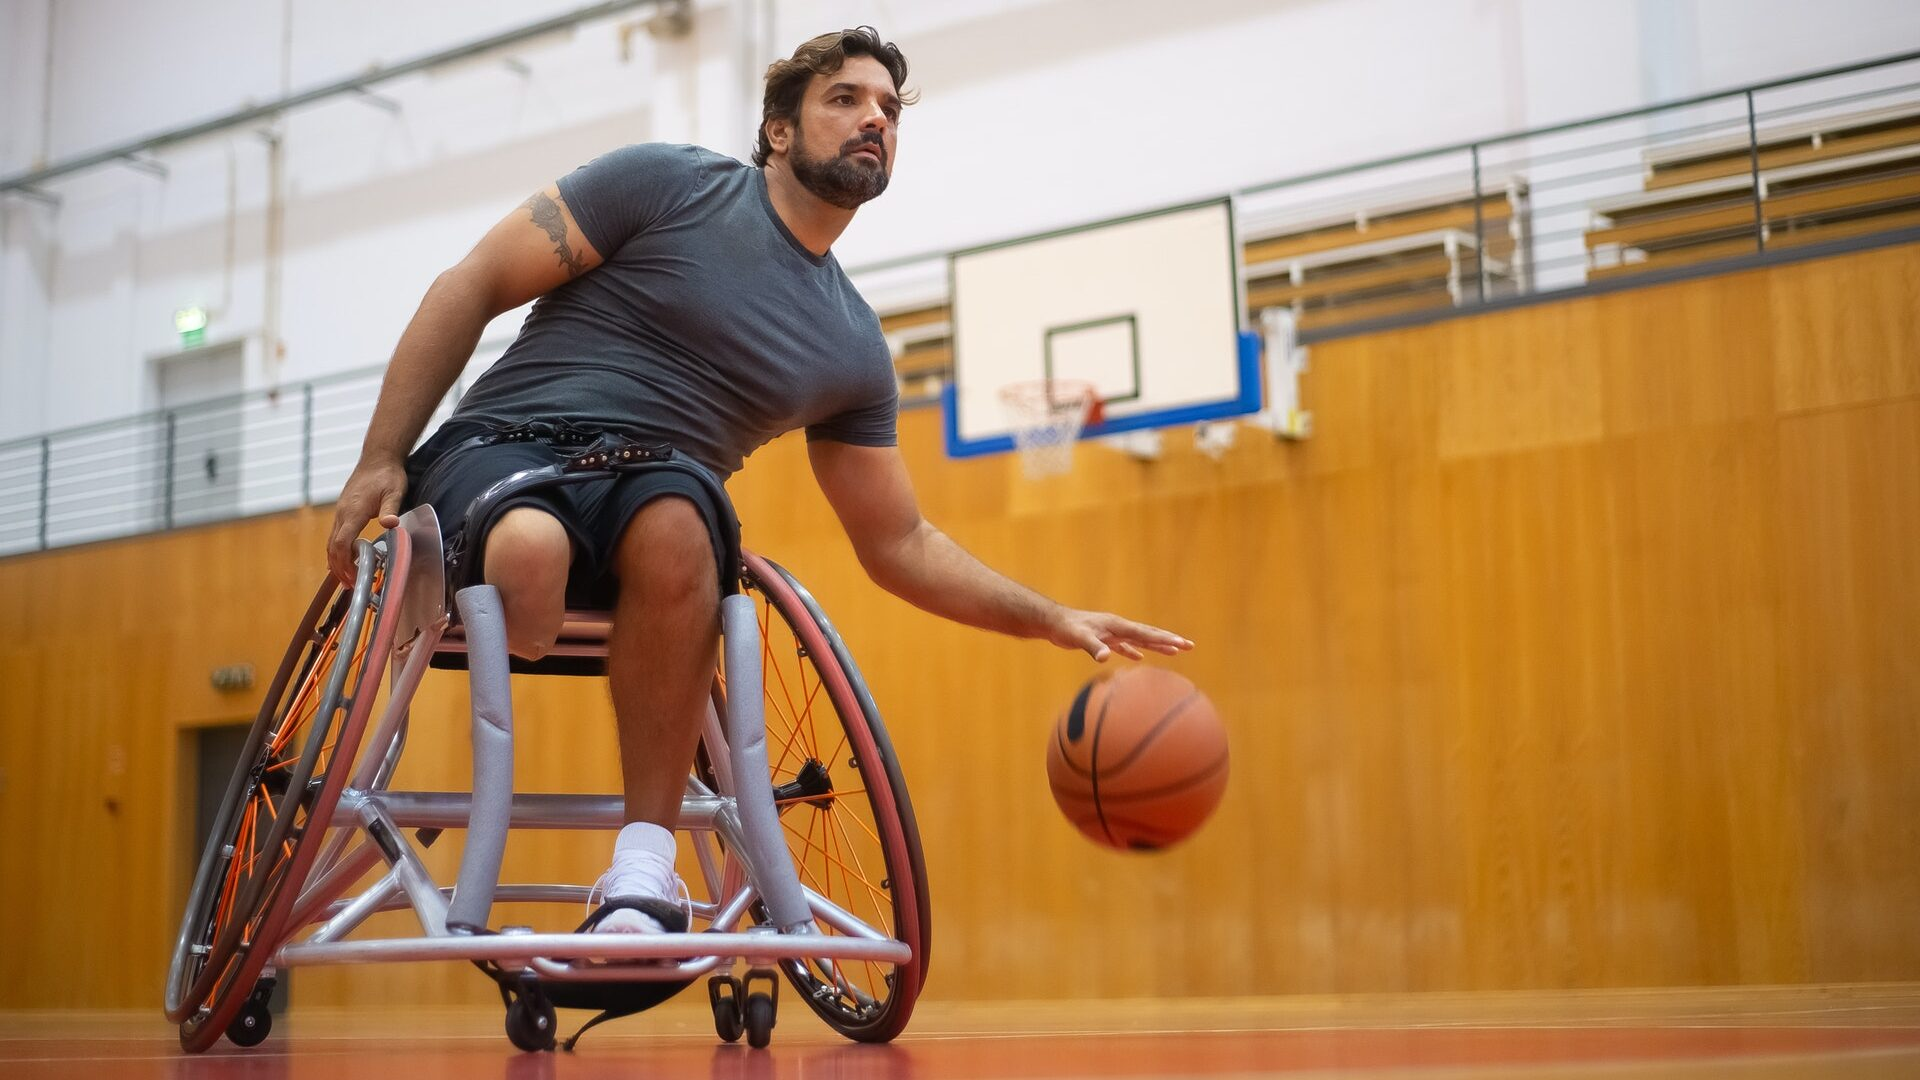 basket-sedia a rotelle